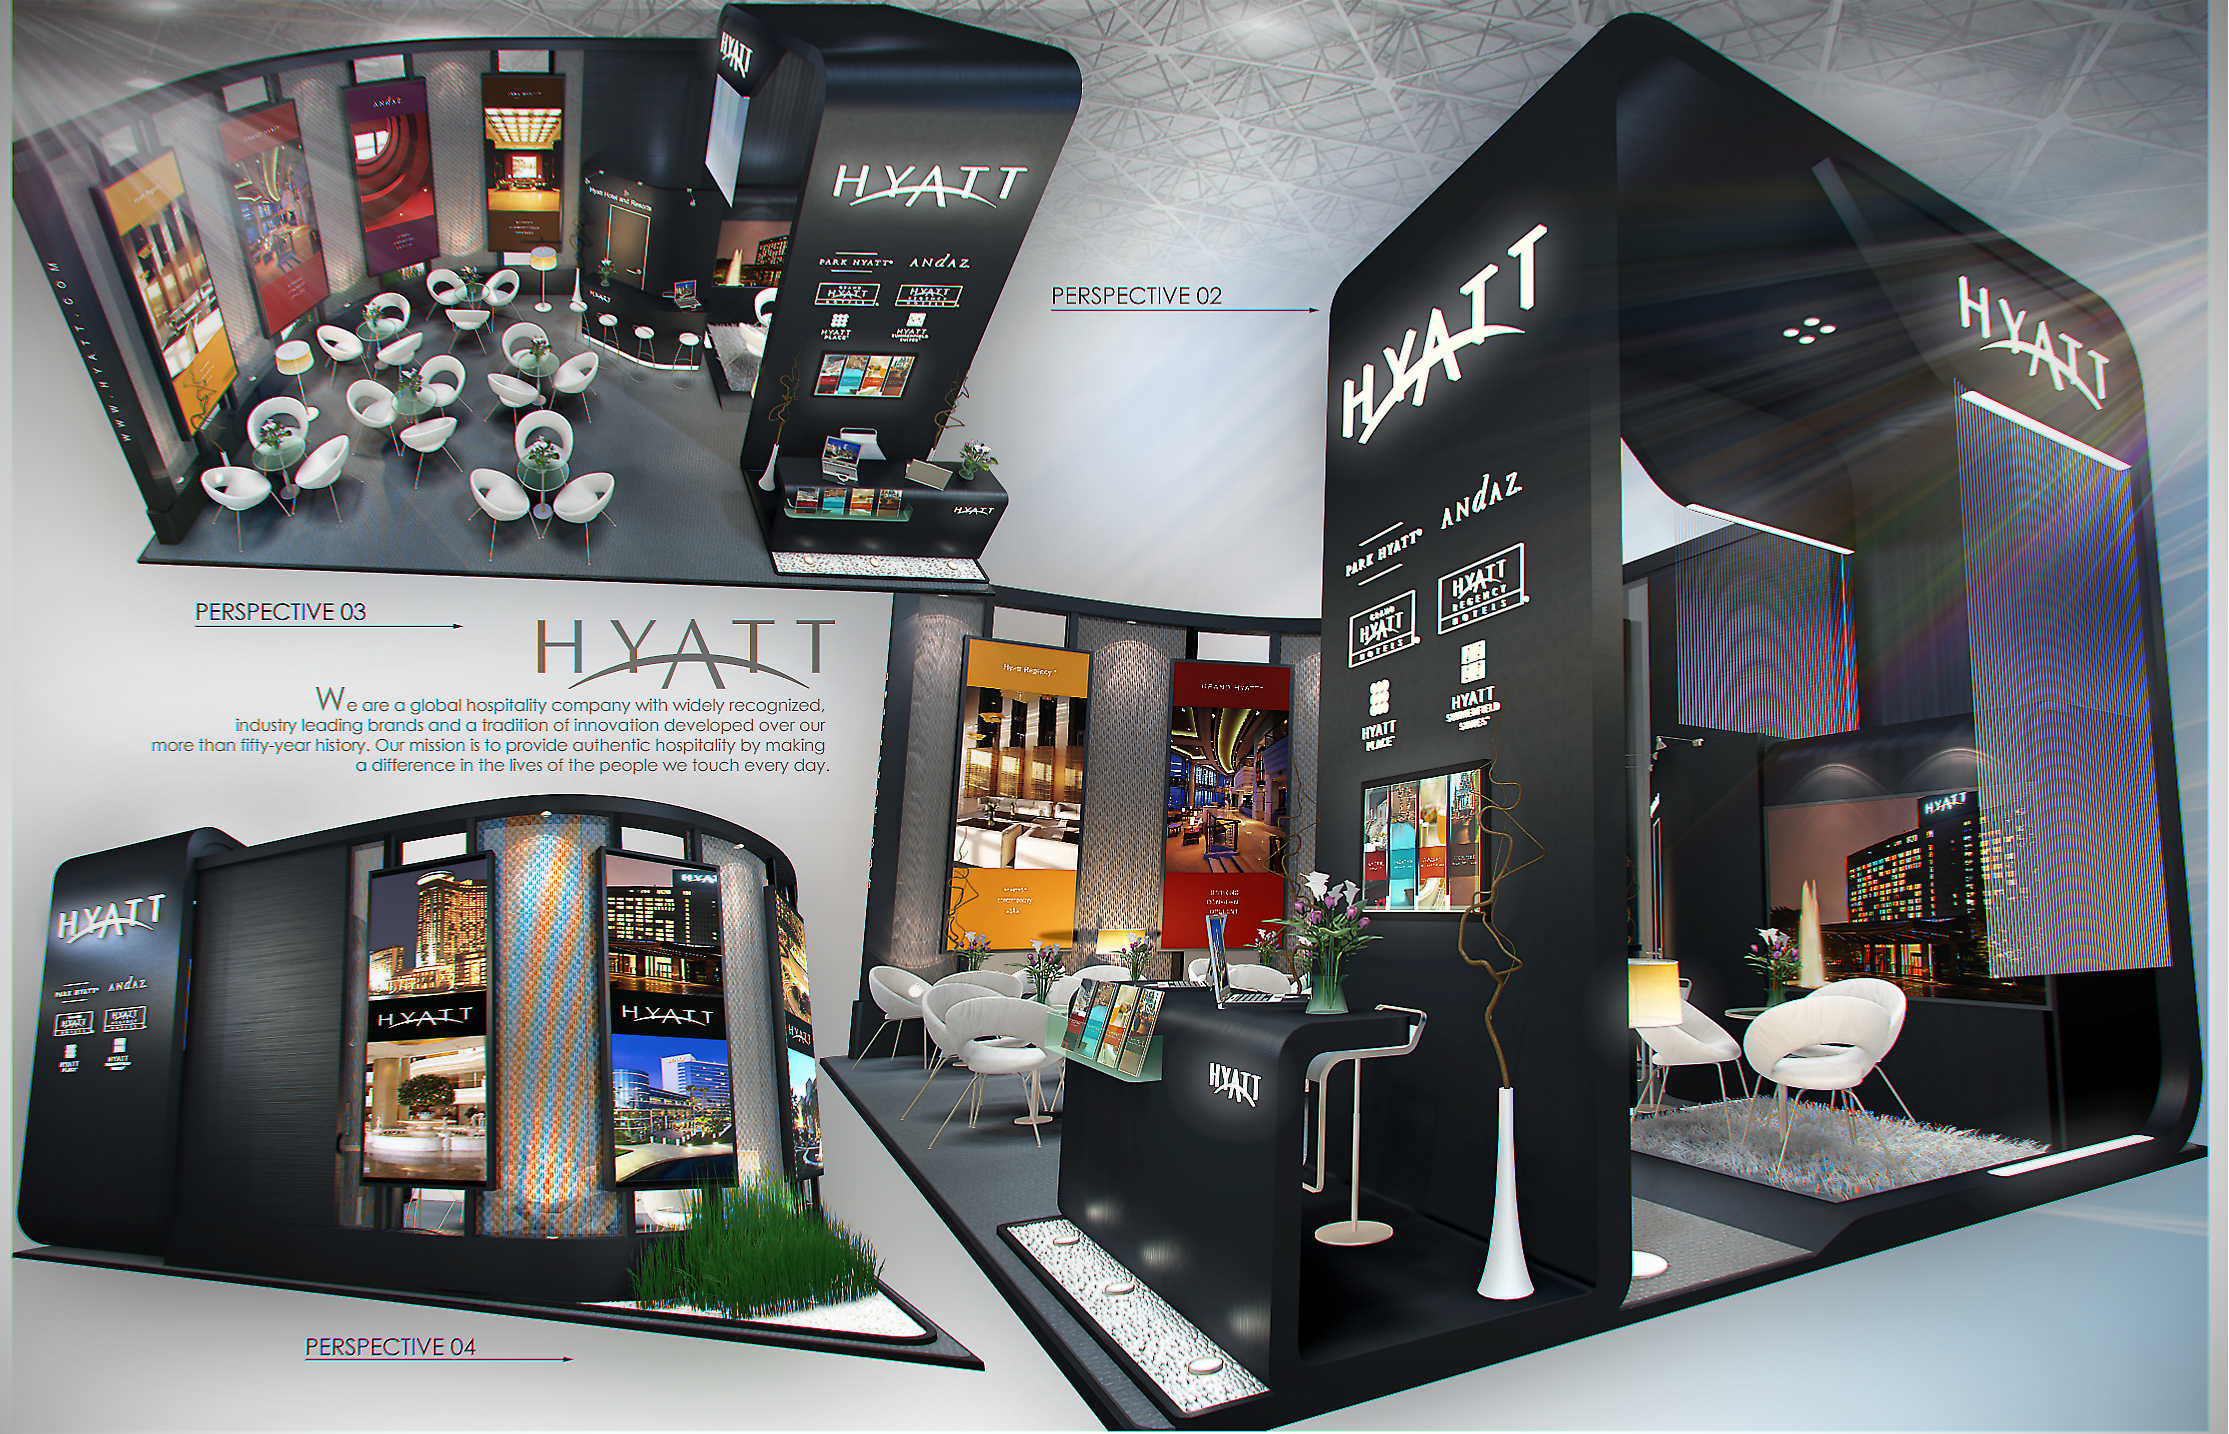 Exhibition Stand Design : Exhibition design ideas on pinterest stands